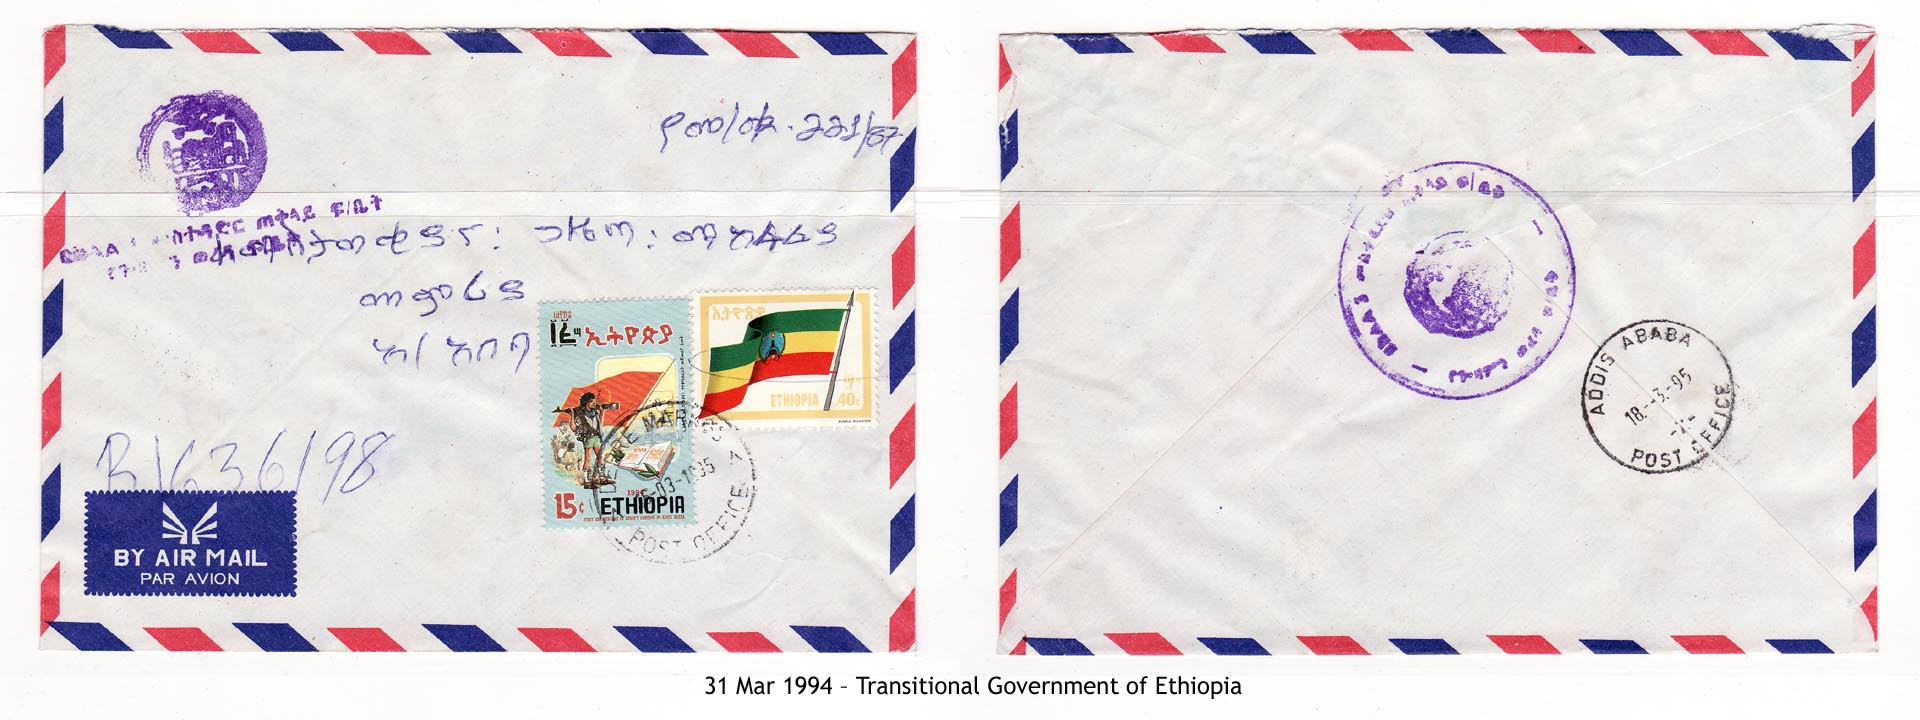 19940331 – Transitional Government of Ethiopia